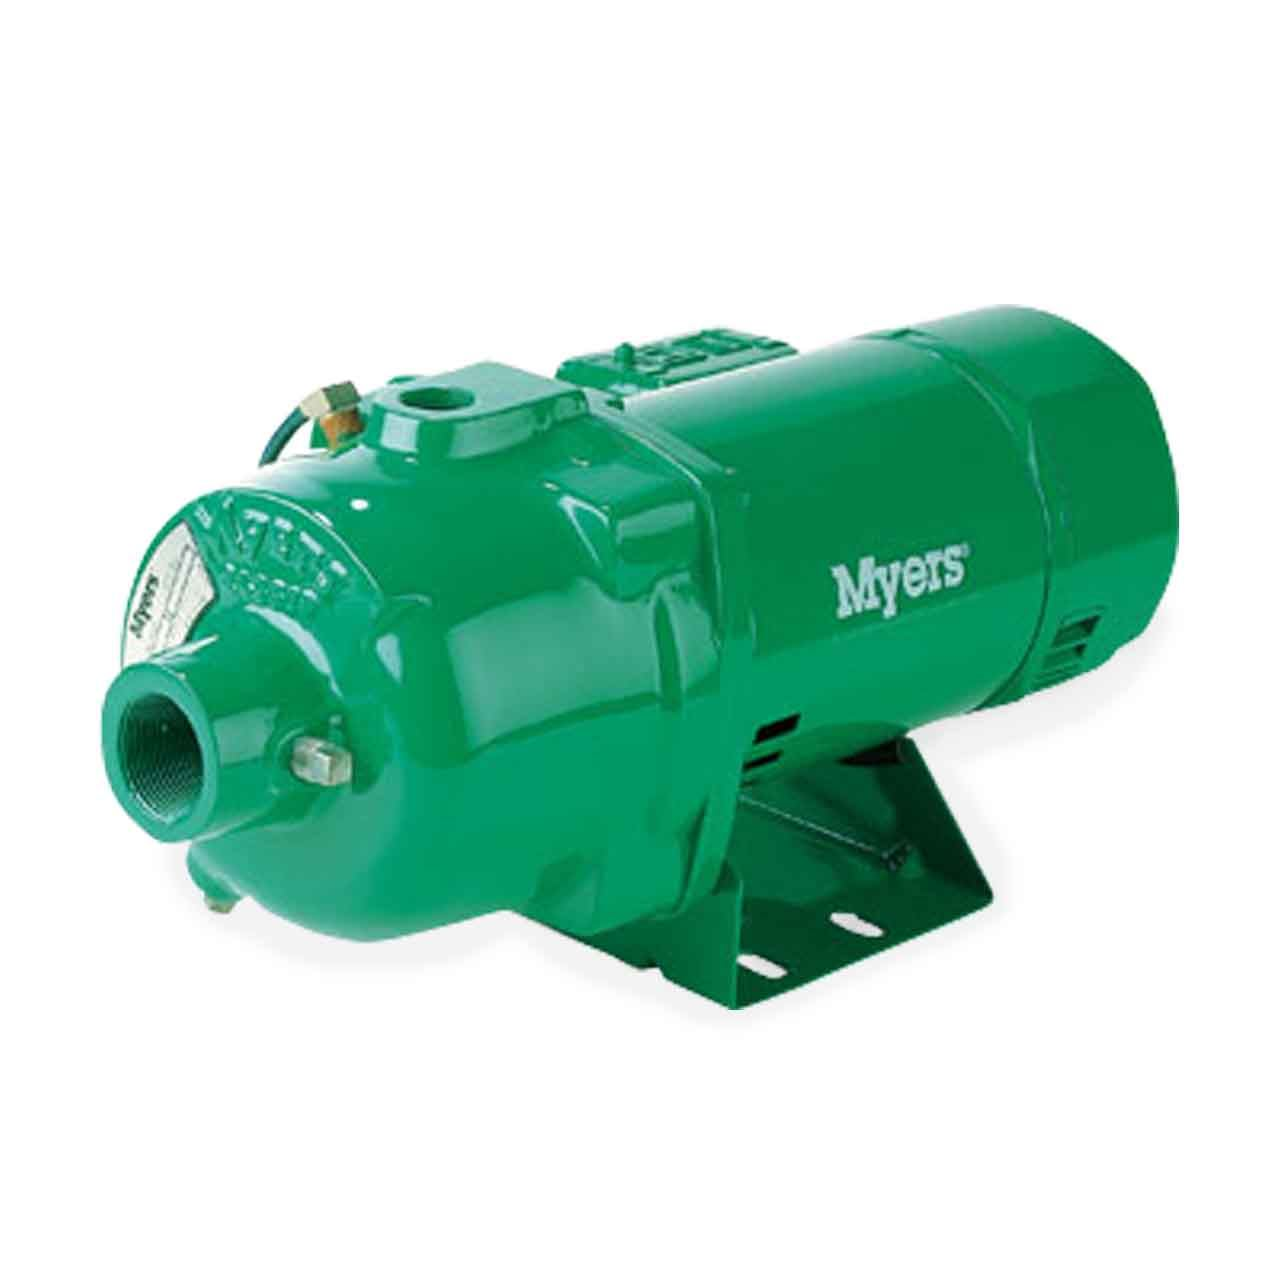 small resolution of myers myers hr50s series convertible jet pumps 0 5 hp 115 230vmyers hr50s wiring diagram